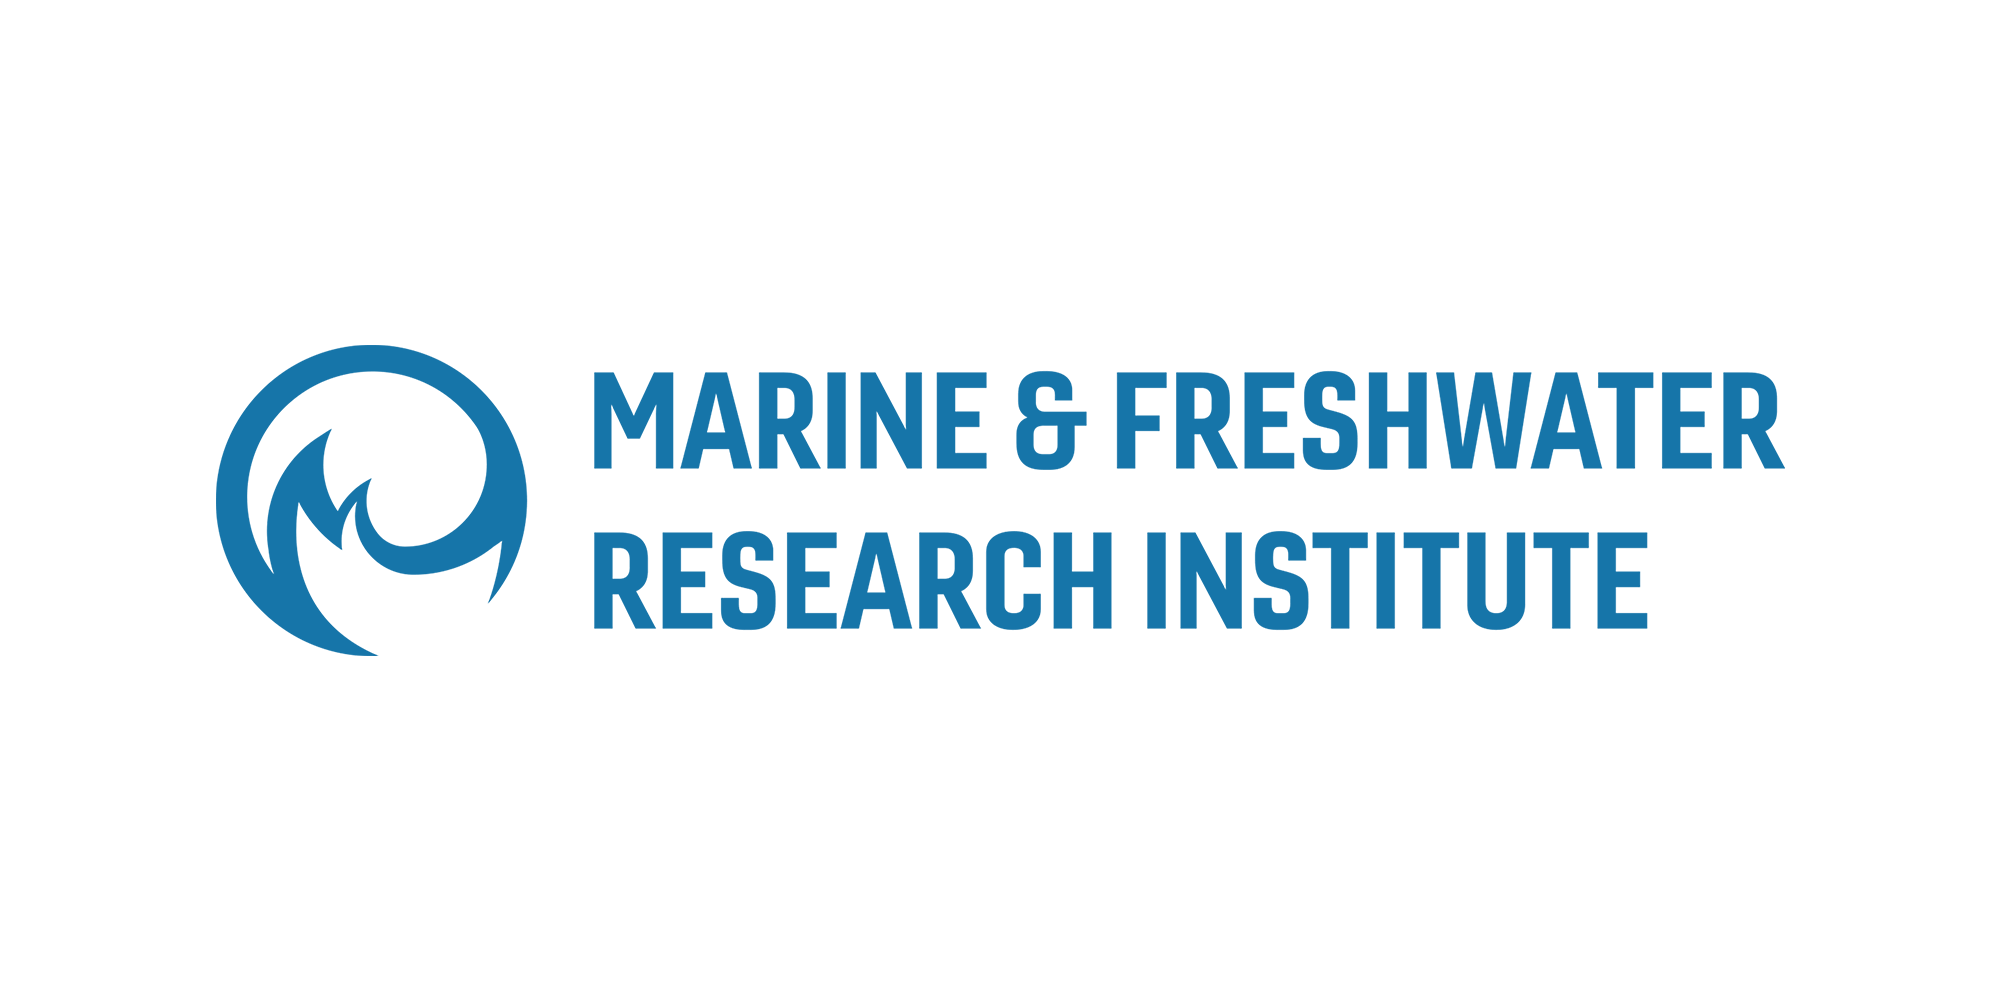 MARINE AND FRESHWATER RESEARCH INSTITUTE